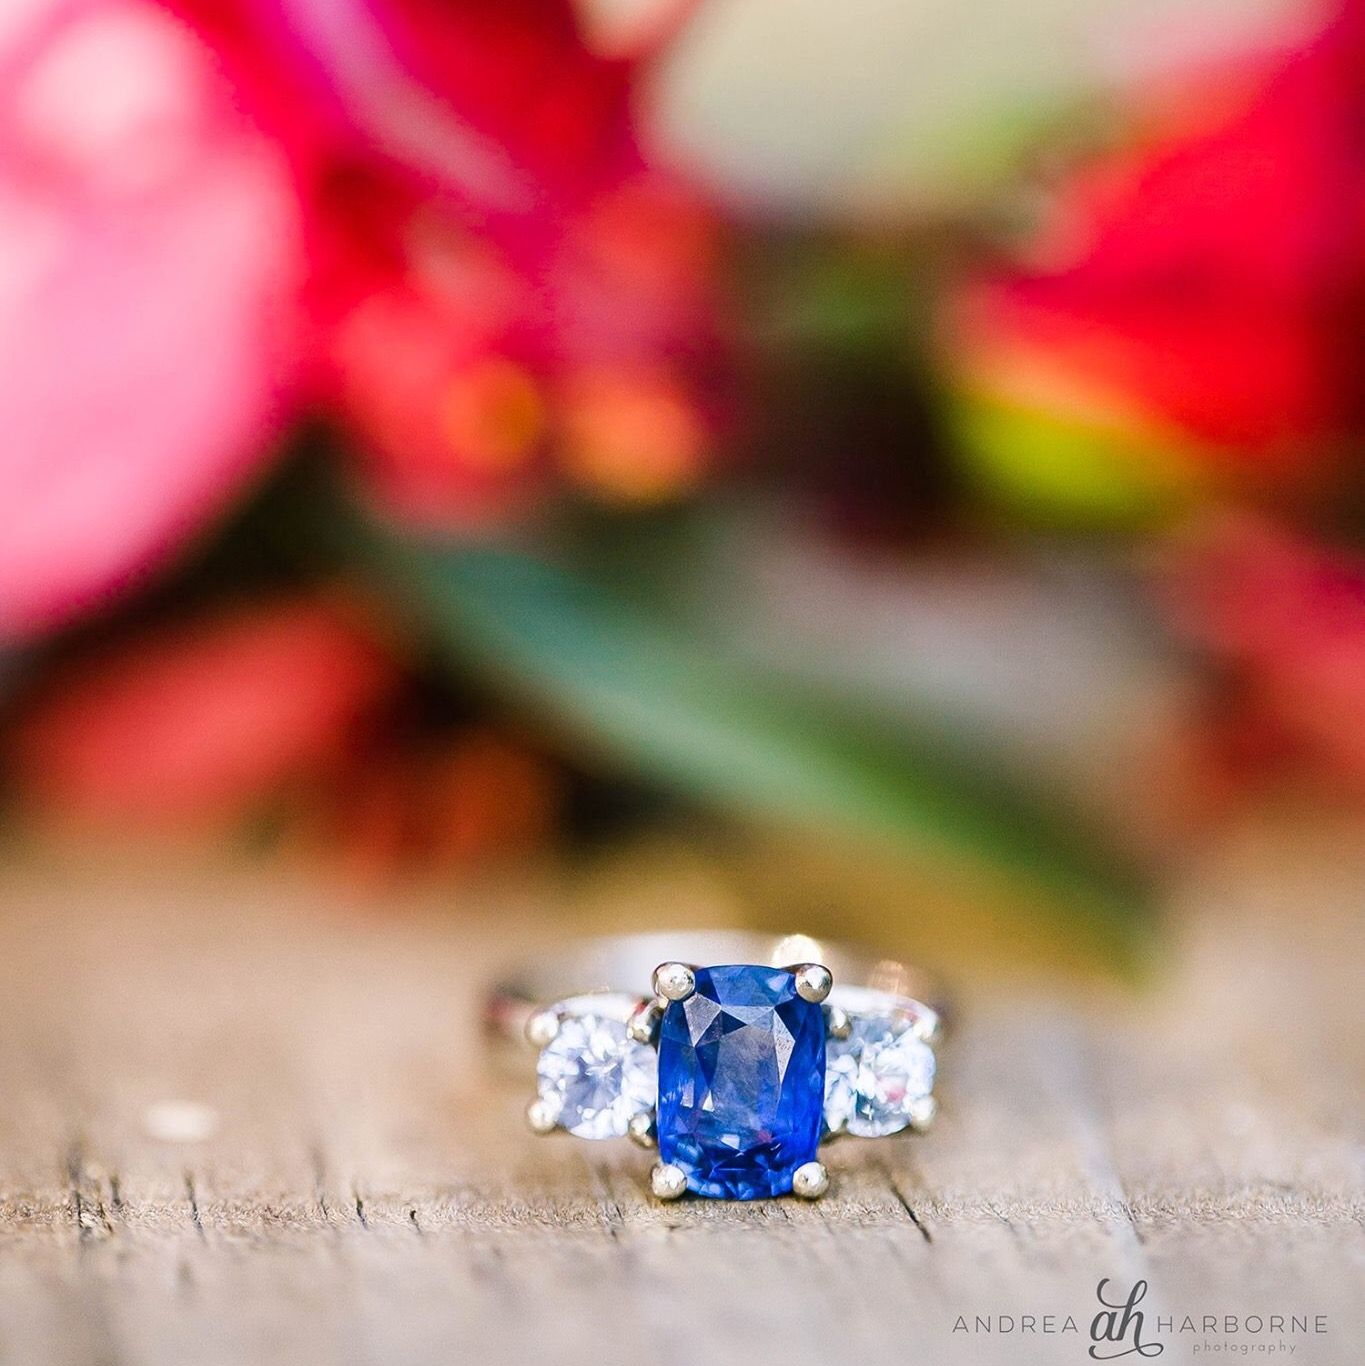 Engagement Ring: how beautiful is this sapphire & diamond engagement ring..? ❤😍   #andreaharbornephotography #couples #love #fortlauderdale #fortlauderdaleengagementphotographer #fortlauderdalephotographer #miami #miamiphotographer #southfloridaphotographer #engagement #bride #groom #southfloridaengagementphotographer #engagementphotography #floridawedding #floridaweddingphotographer #engagementsession #ido #browardphotographer #miamiengagementphotographer #engaged  #engagementring